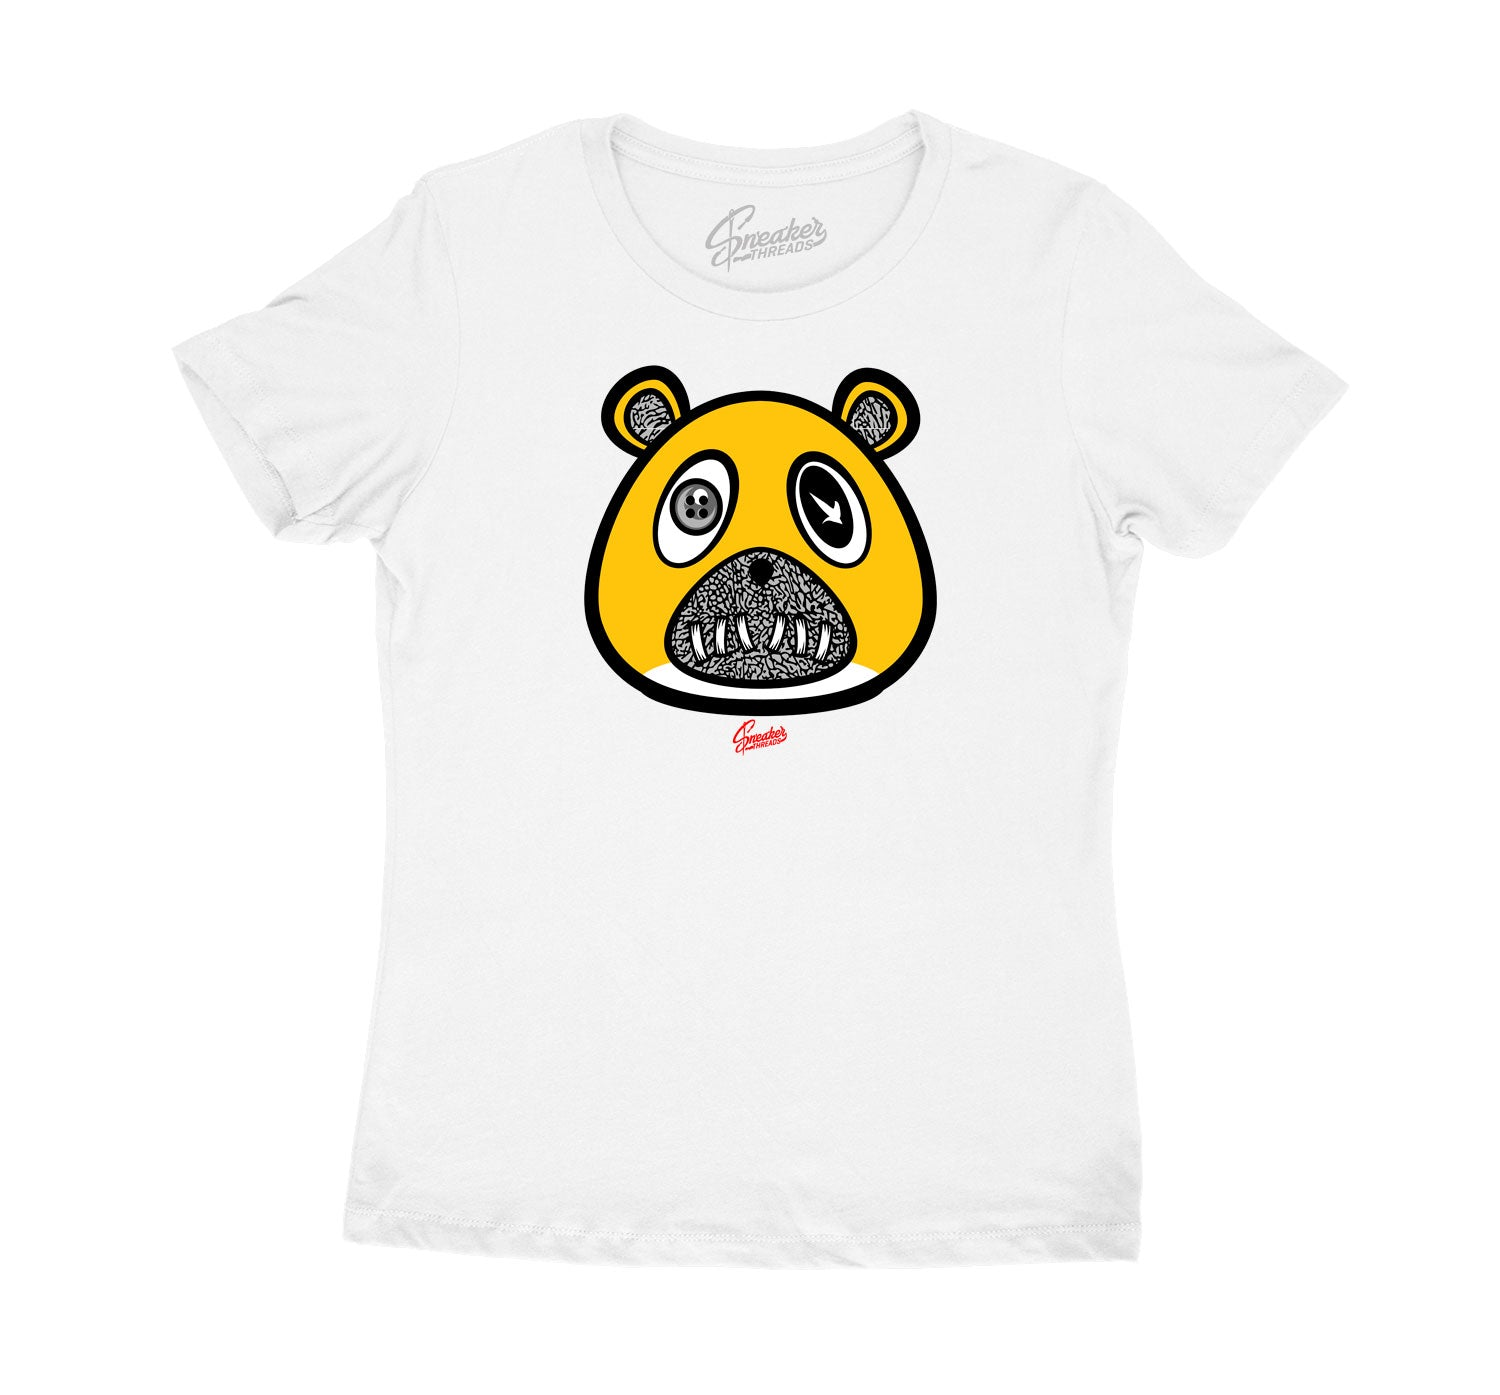 Womens Cool Grey 3 Shirt - ST Bear - White